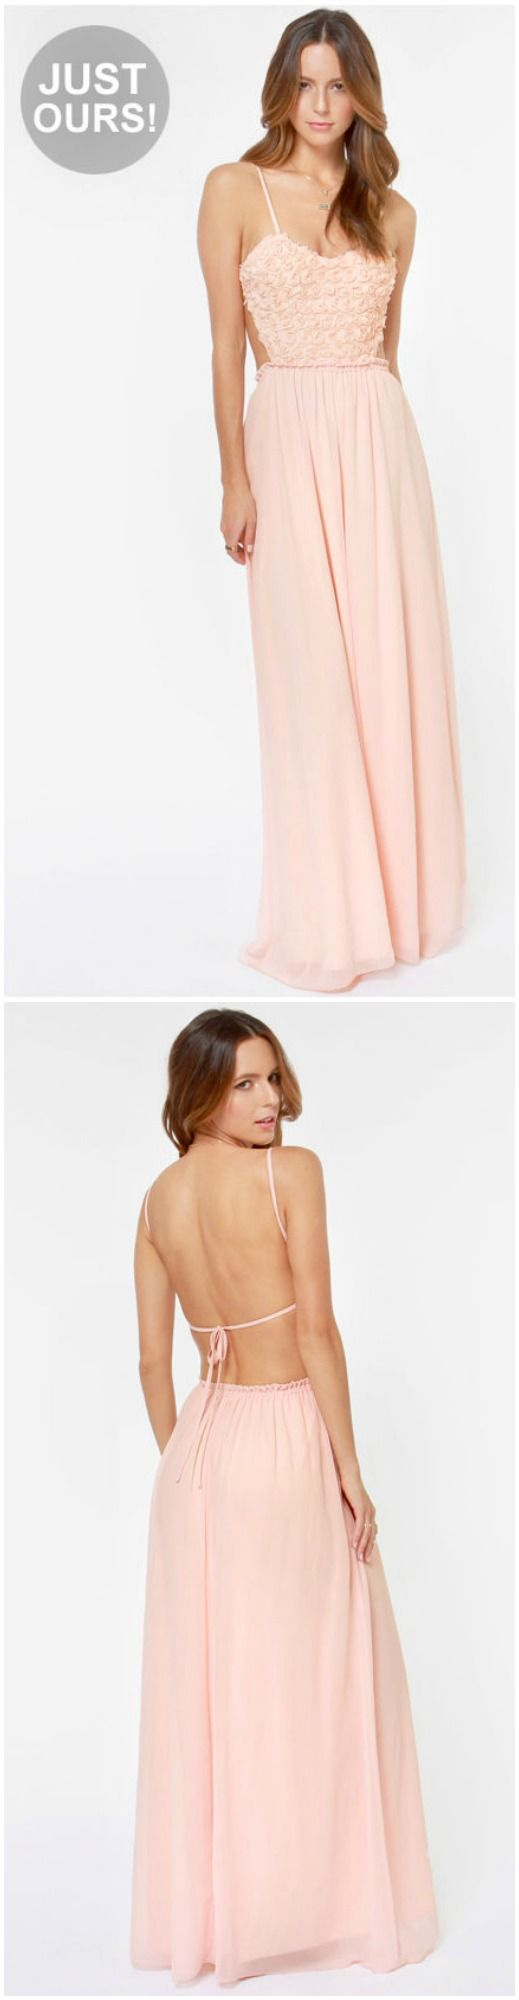 Light Pink Maxi Dress #spring #pastel